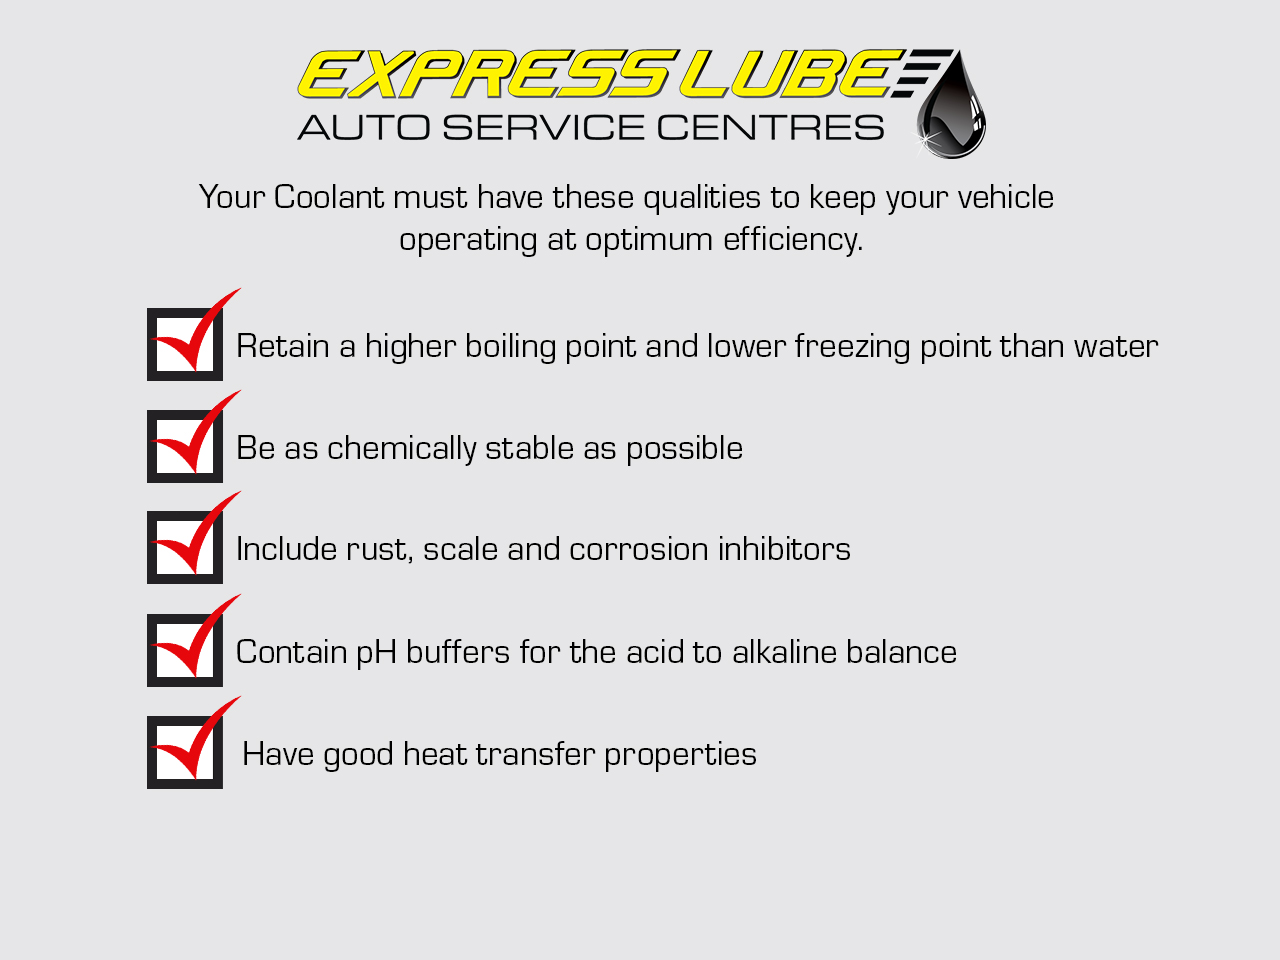 Coolant for your car